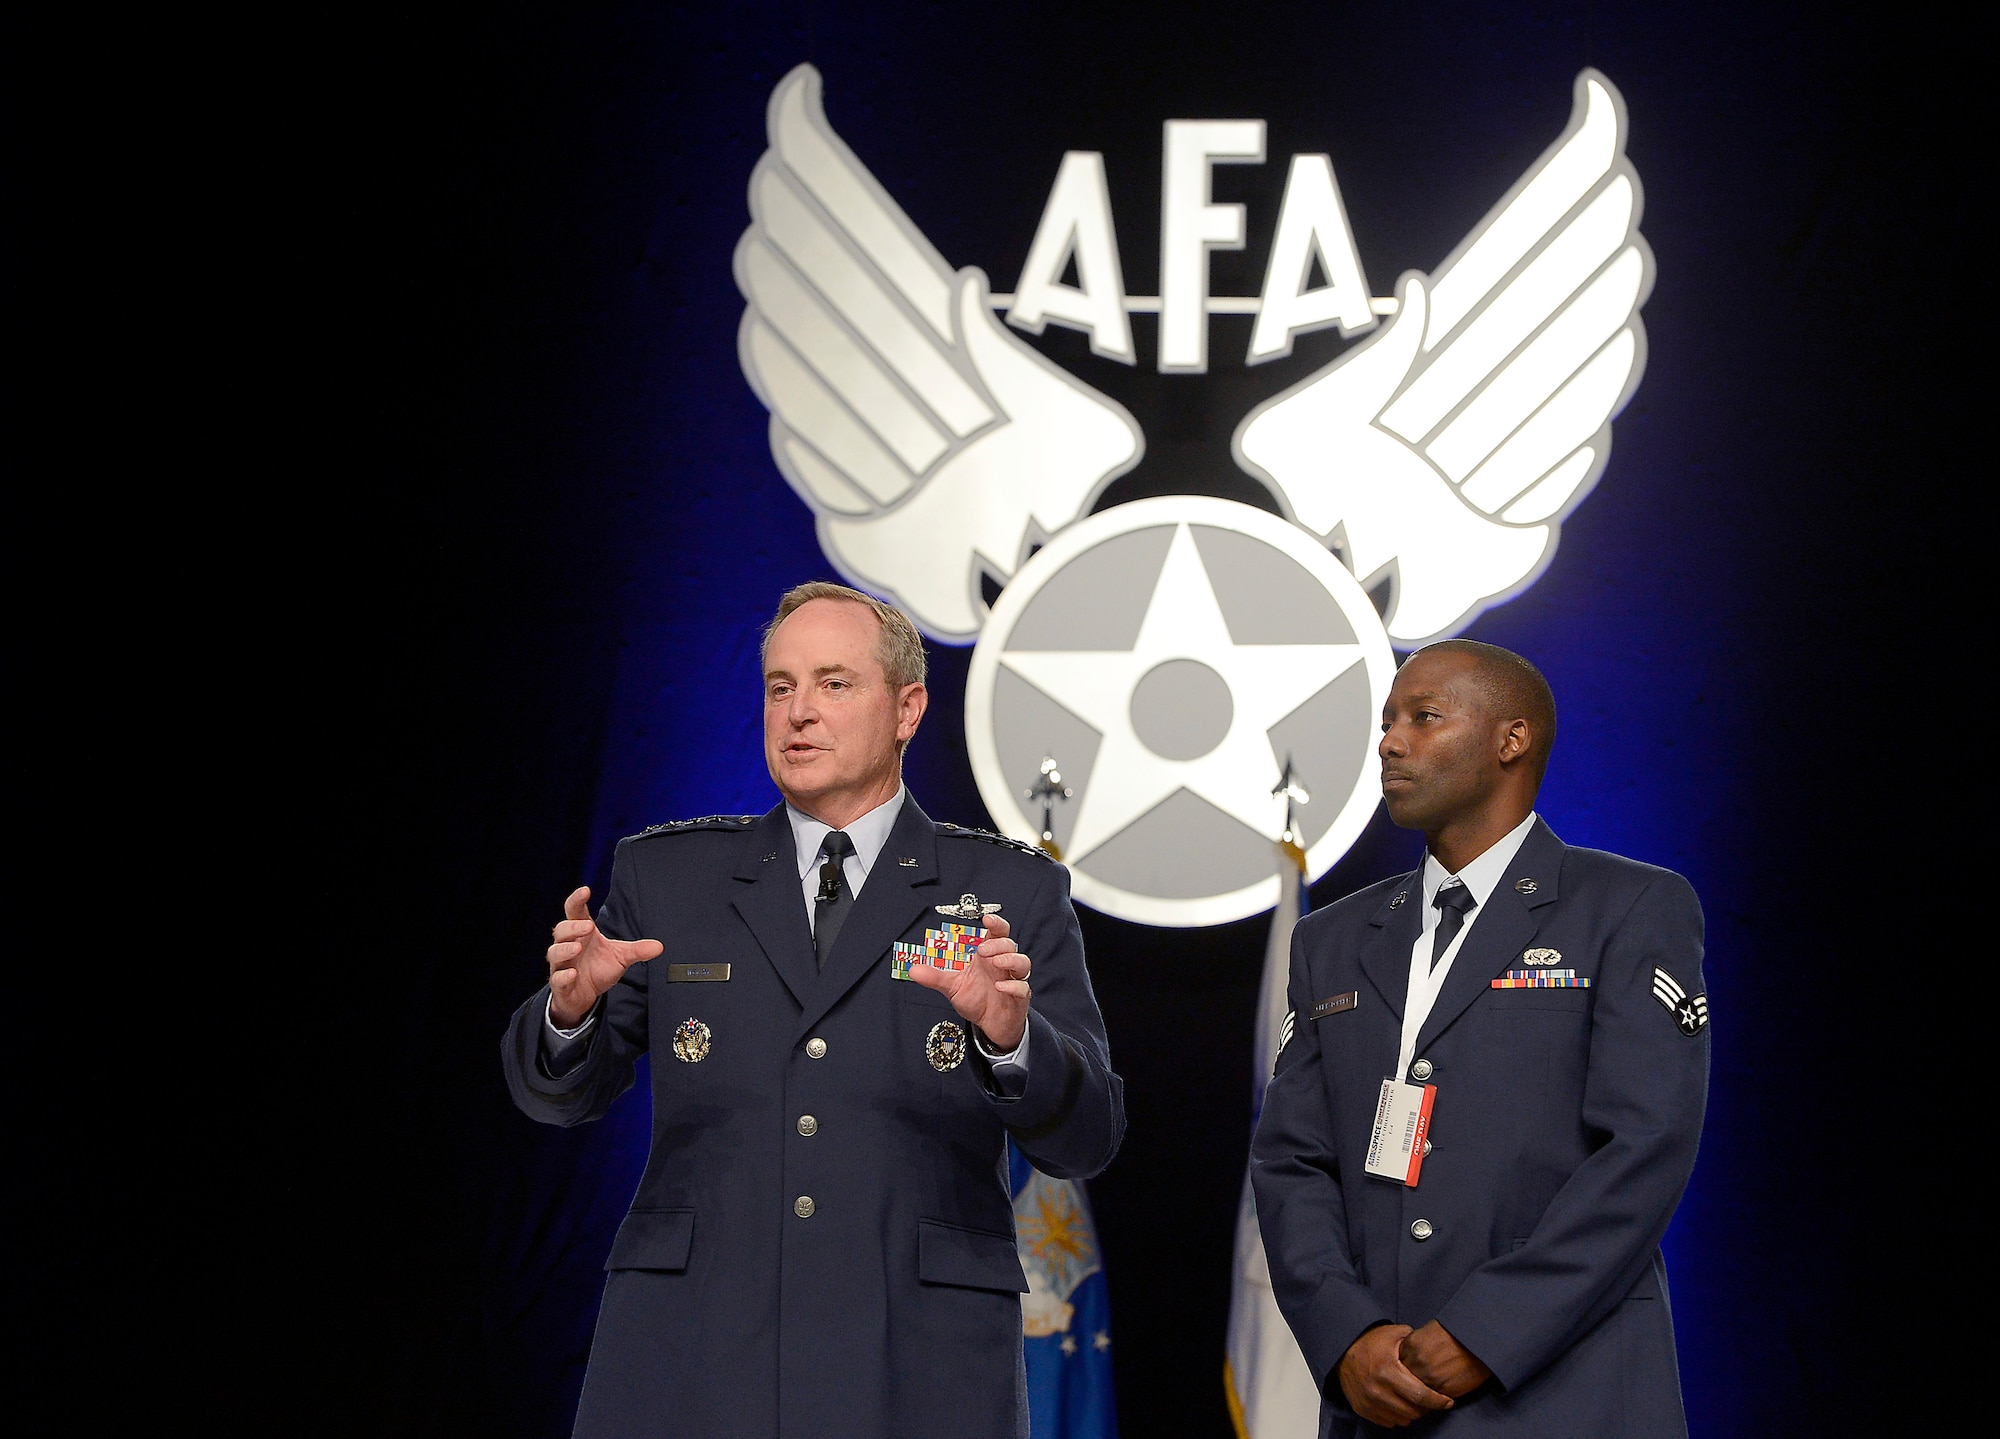 Air Force Chief of Staff Gen. Mark A. Welsh III introduces Senior Airman Shemiel Christopher for his work at the Dover Air Force Base, Del., Fisher House during his keynote presentation on the state of the Air Force at the Air Force Association's Air and Space Conference and Technology Exposition in Washington, D.C., Sept. 18, 2012.   (U.S. Air Force photo/Scott M. Ash)